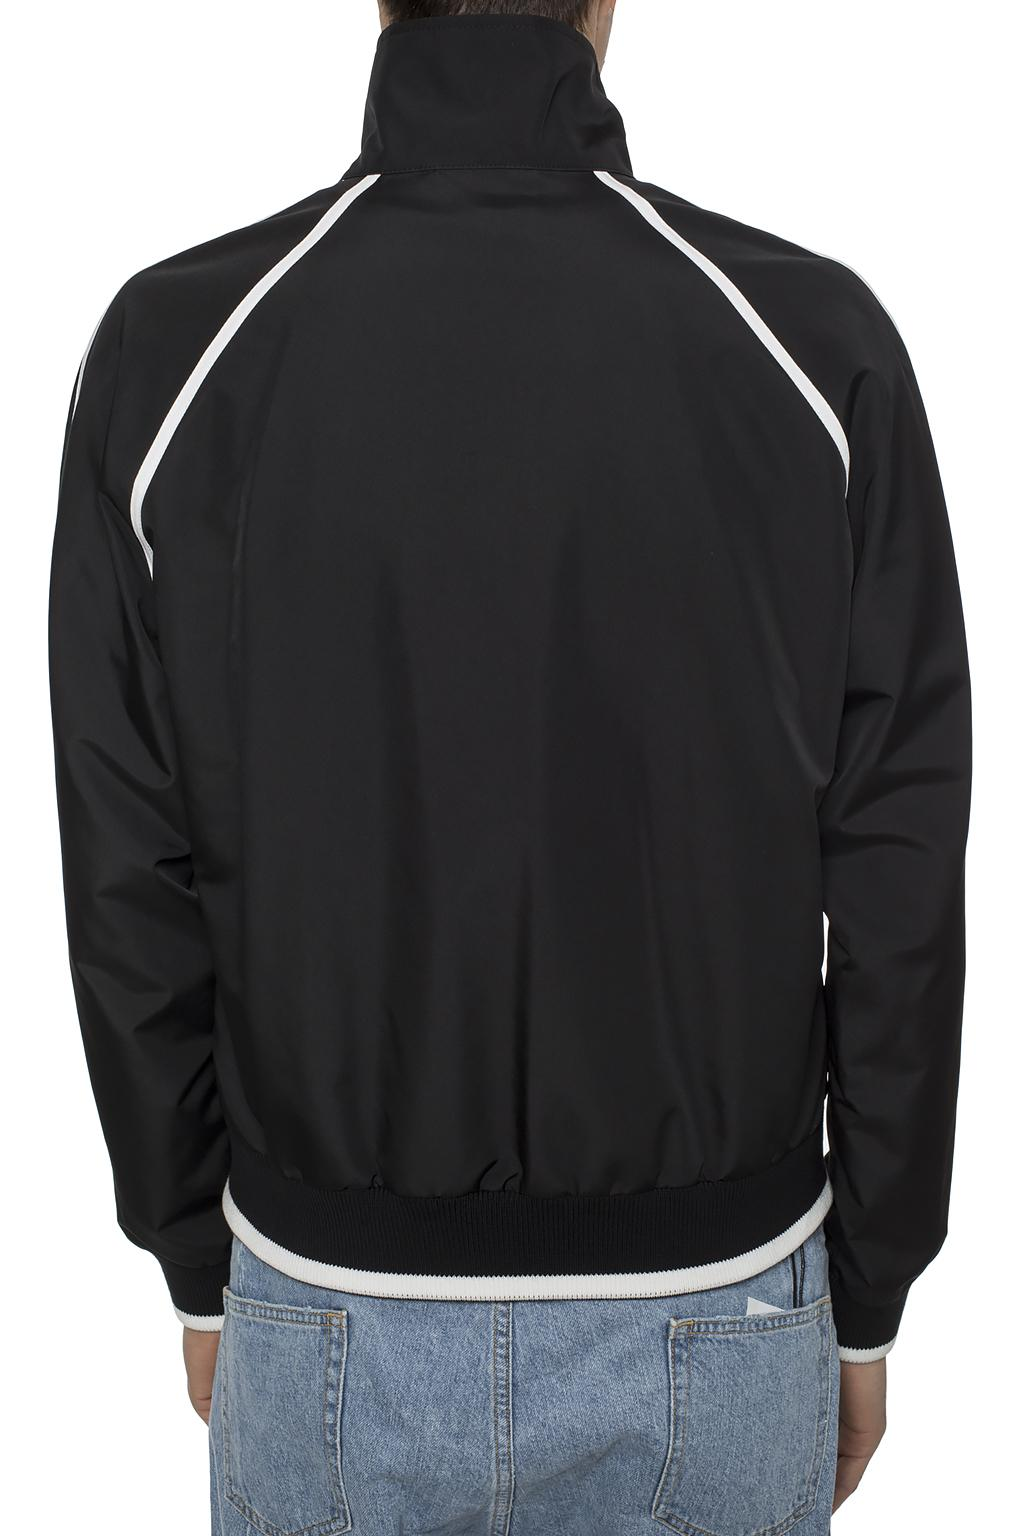 Burberry Band collar track jacket